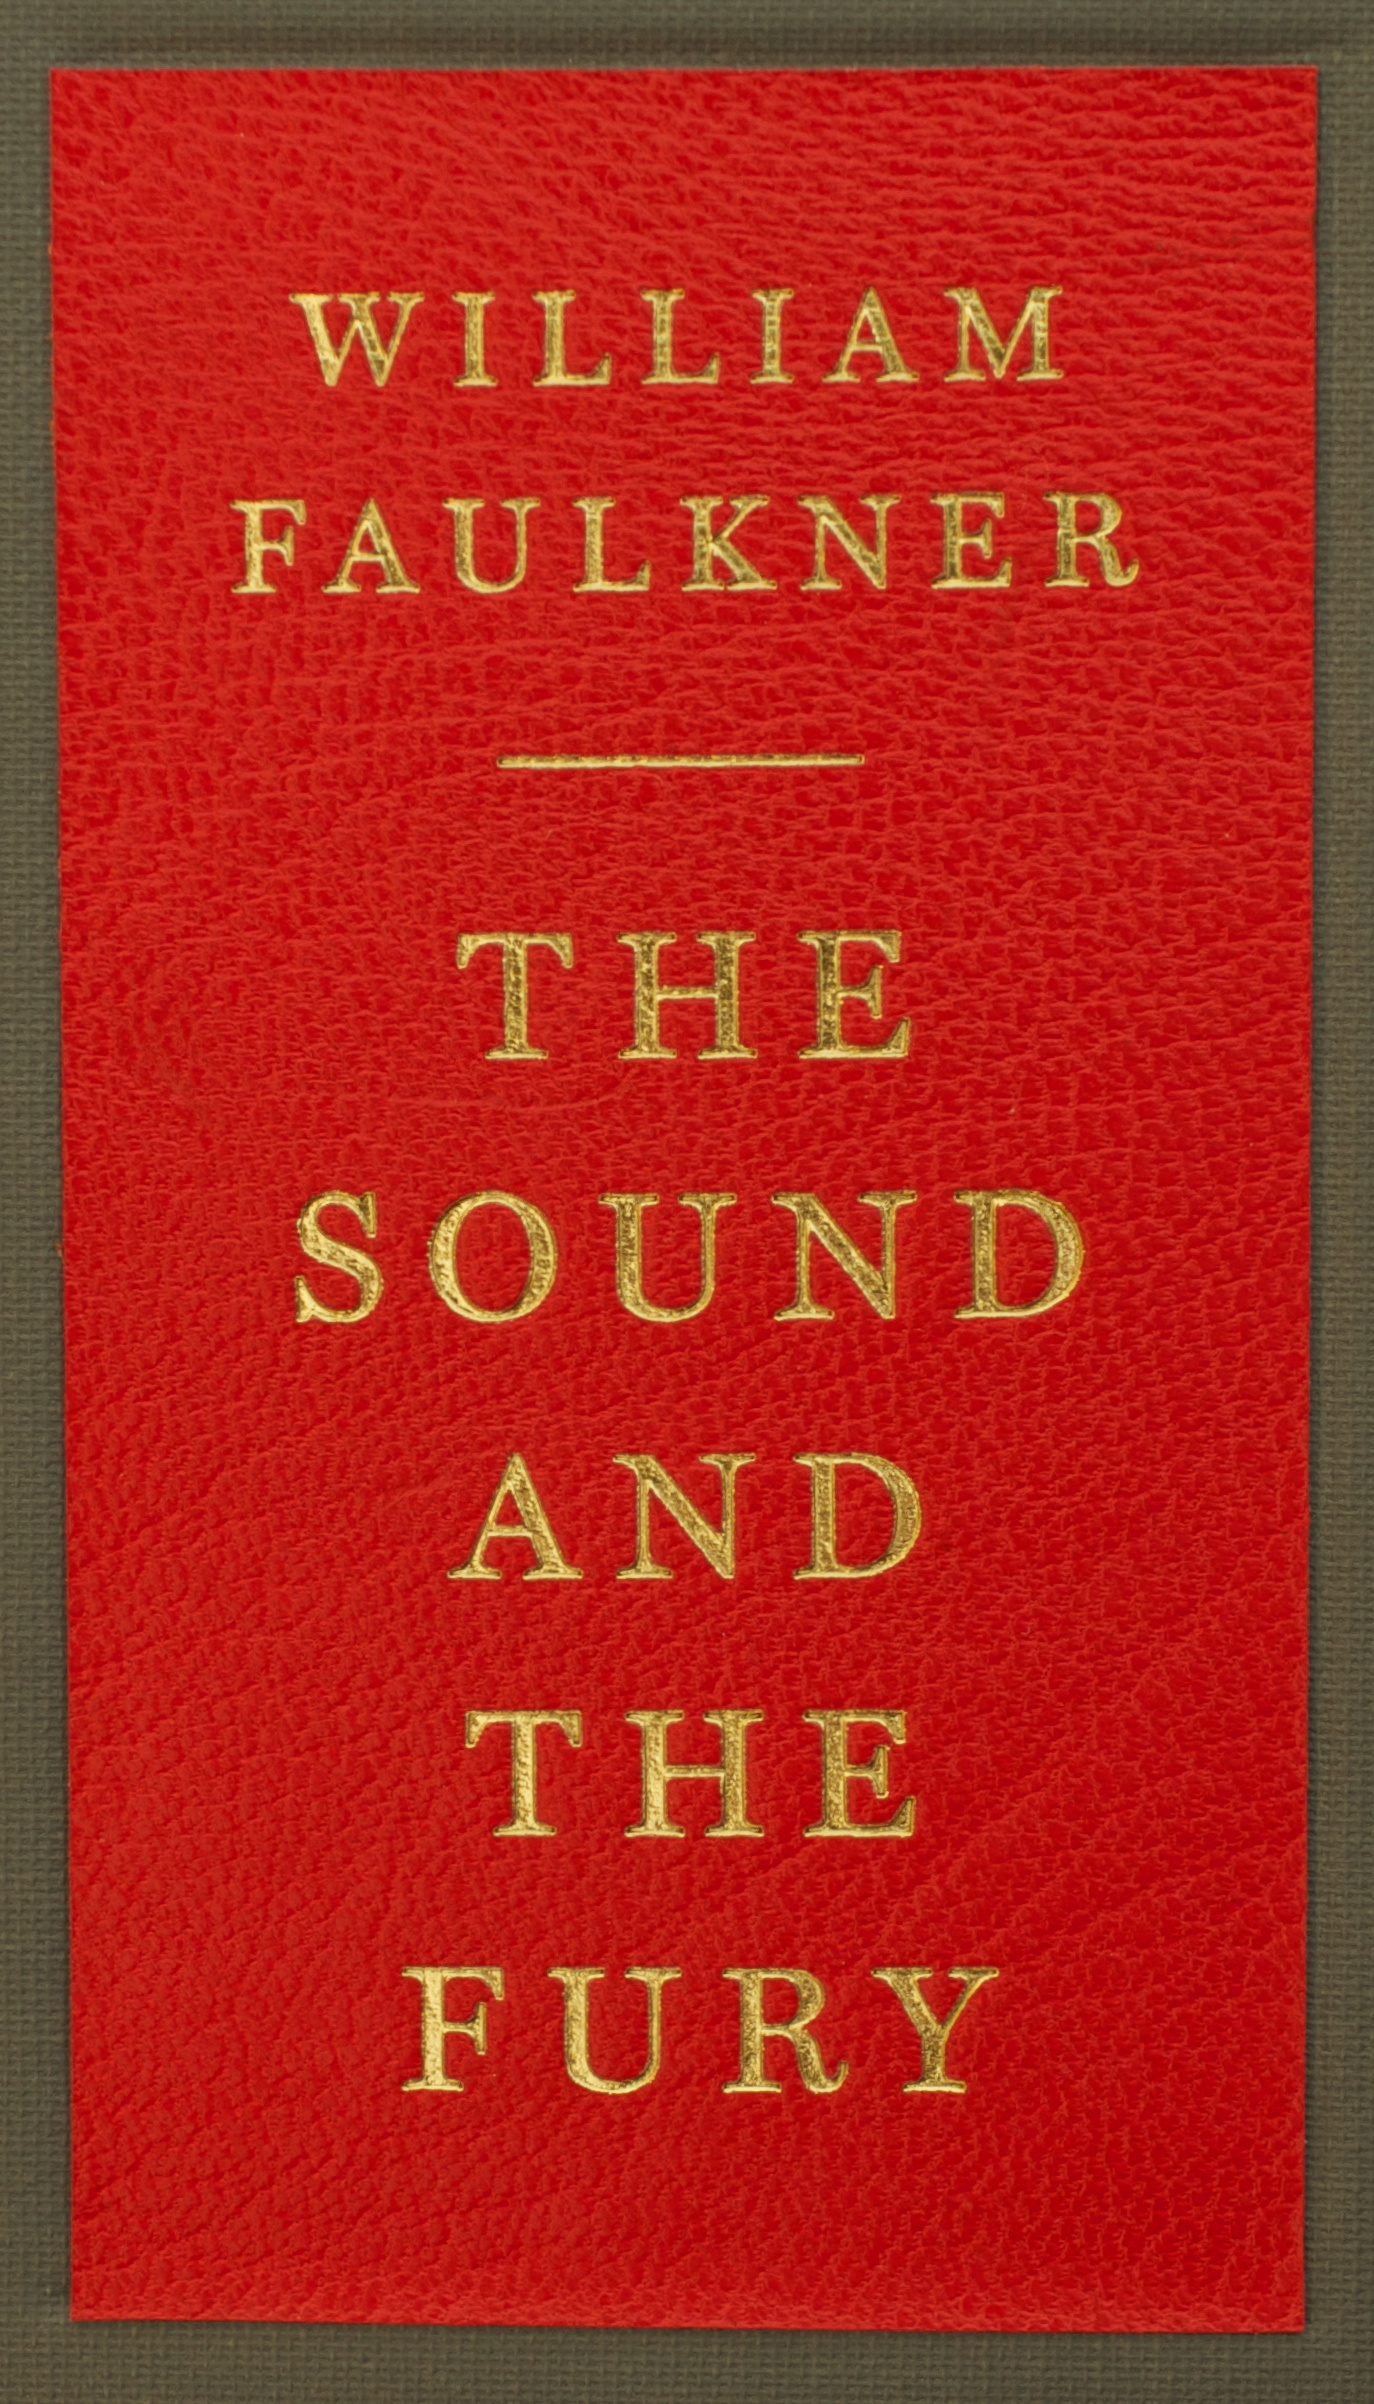 sound and fury Free summary and analysis of the events in william faulkner's the sound and the fury that won't make you snore we promise.